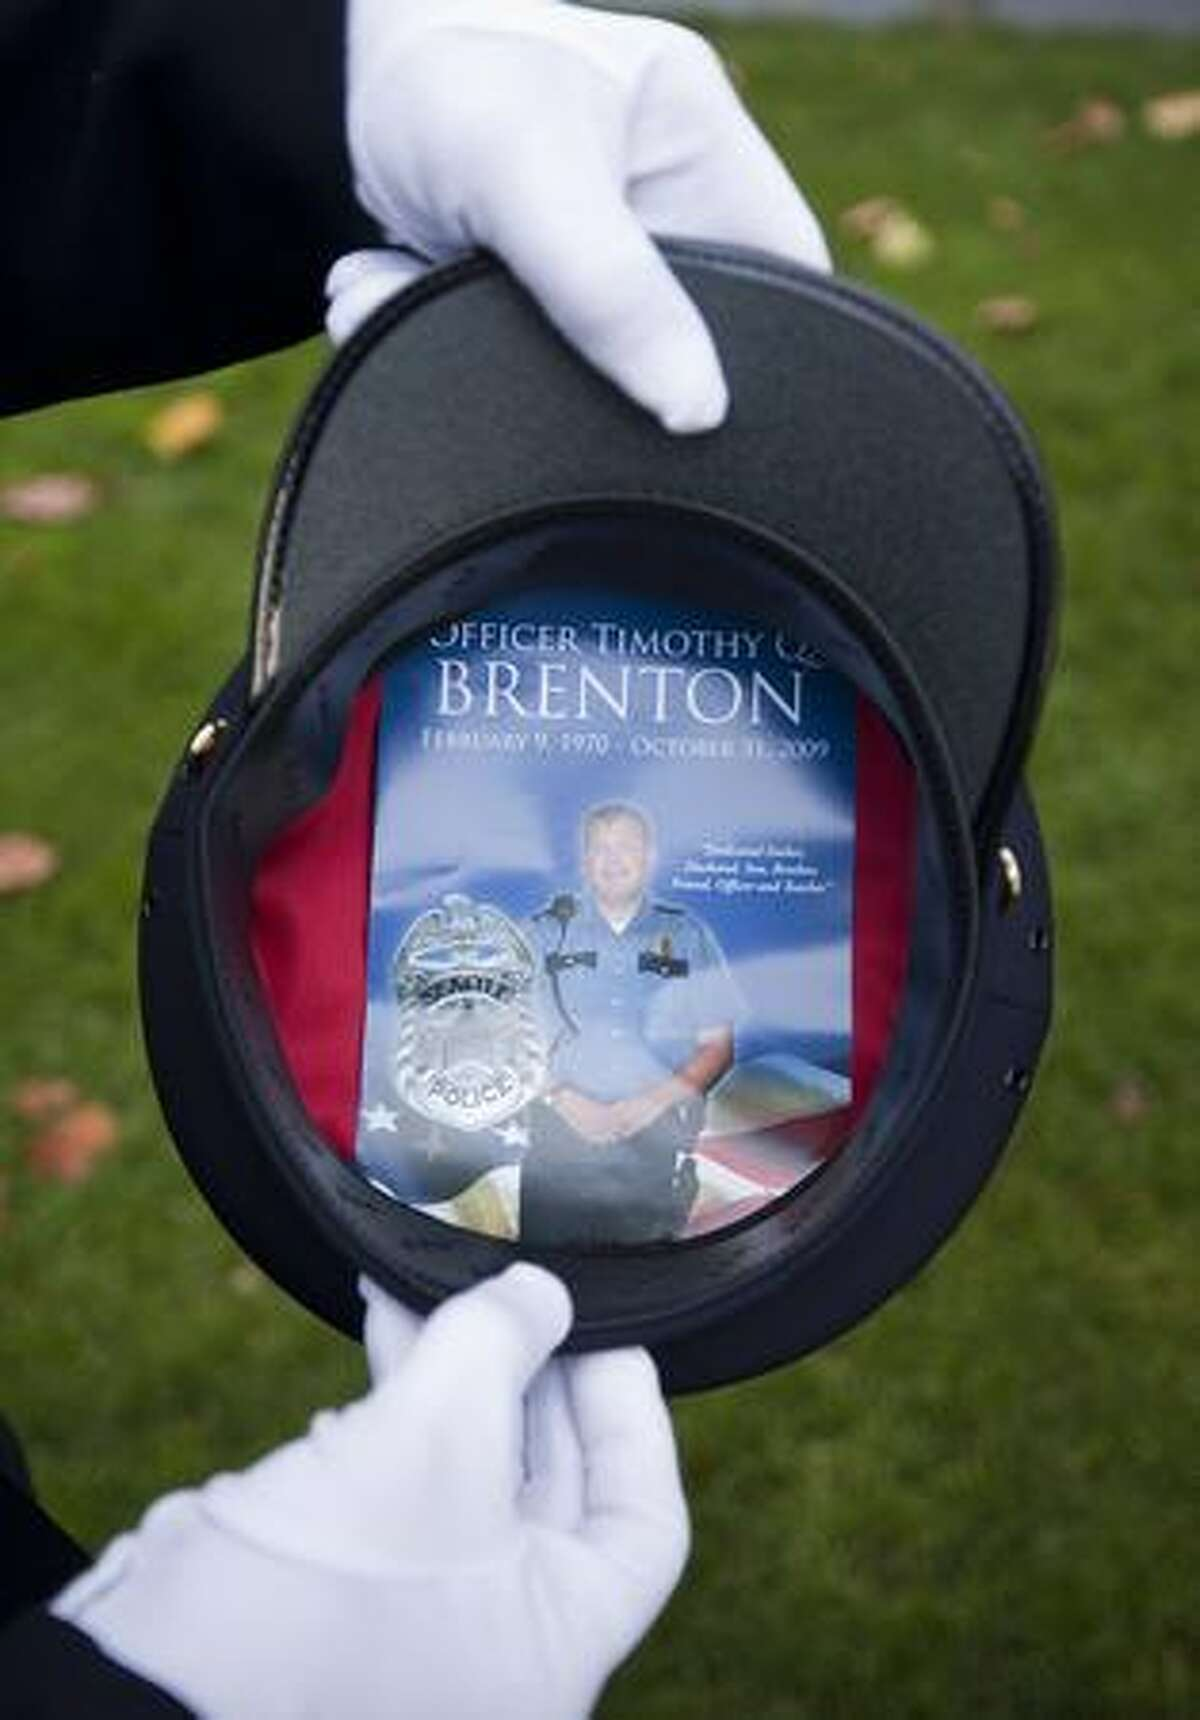 A Canada Border Services officer displays a program in her hat from the memorial service for Timothy Brenton at KeyArena in Seattle Friday following a memorial service for the slain police officer.